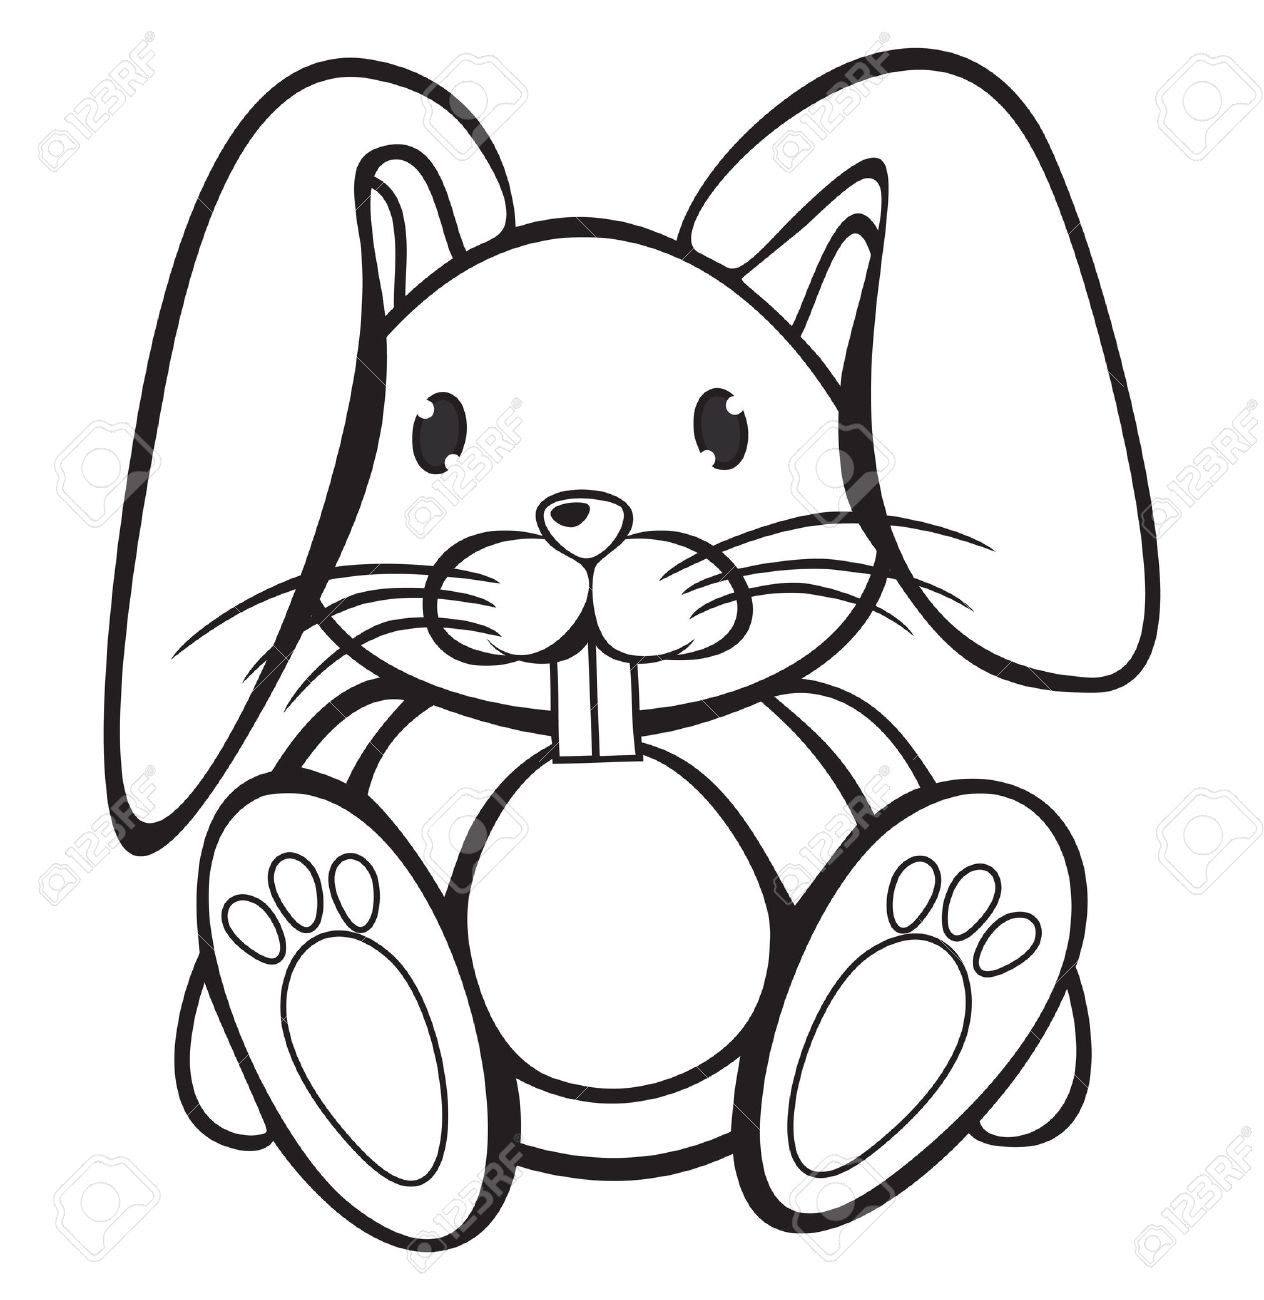 1264x1300 Cute Rabbit Black White Royalty Free Cliparts, Vectors,